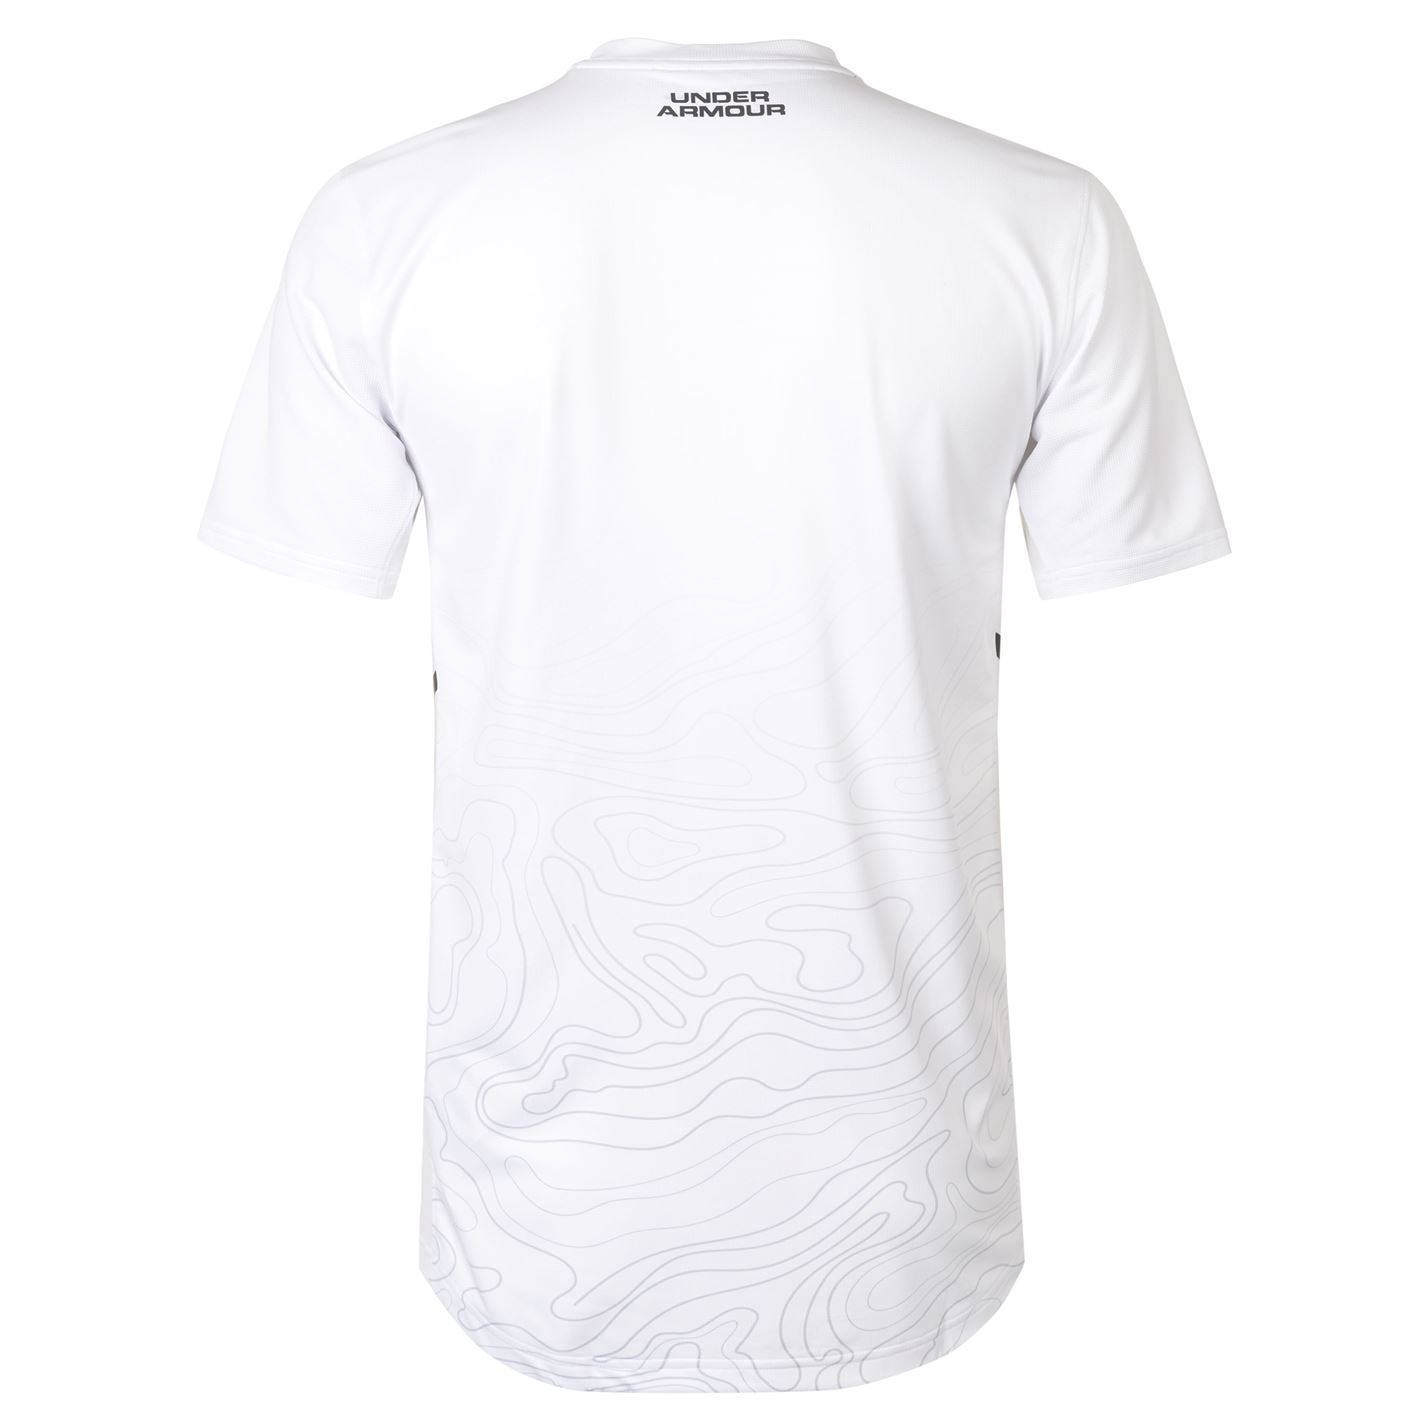 04be5d3a Under Armour Forge V Neck T Shirt Mens Gents Short Sleeve ...